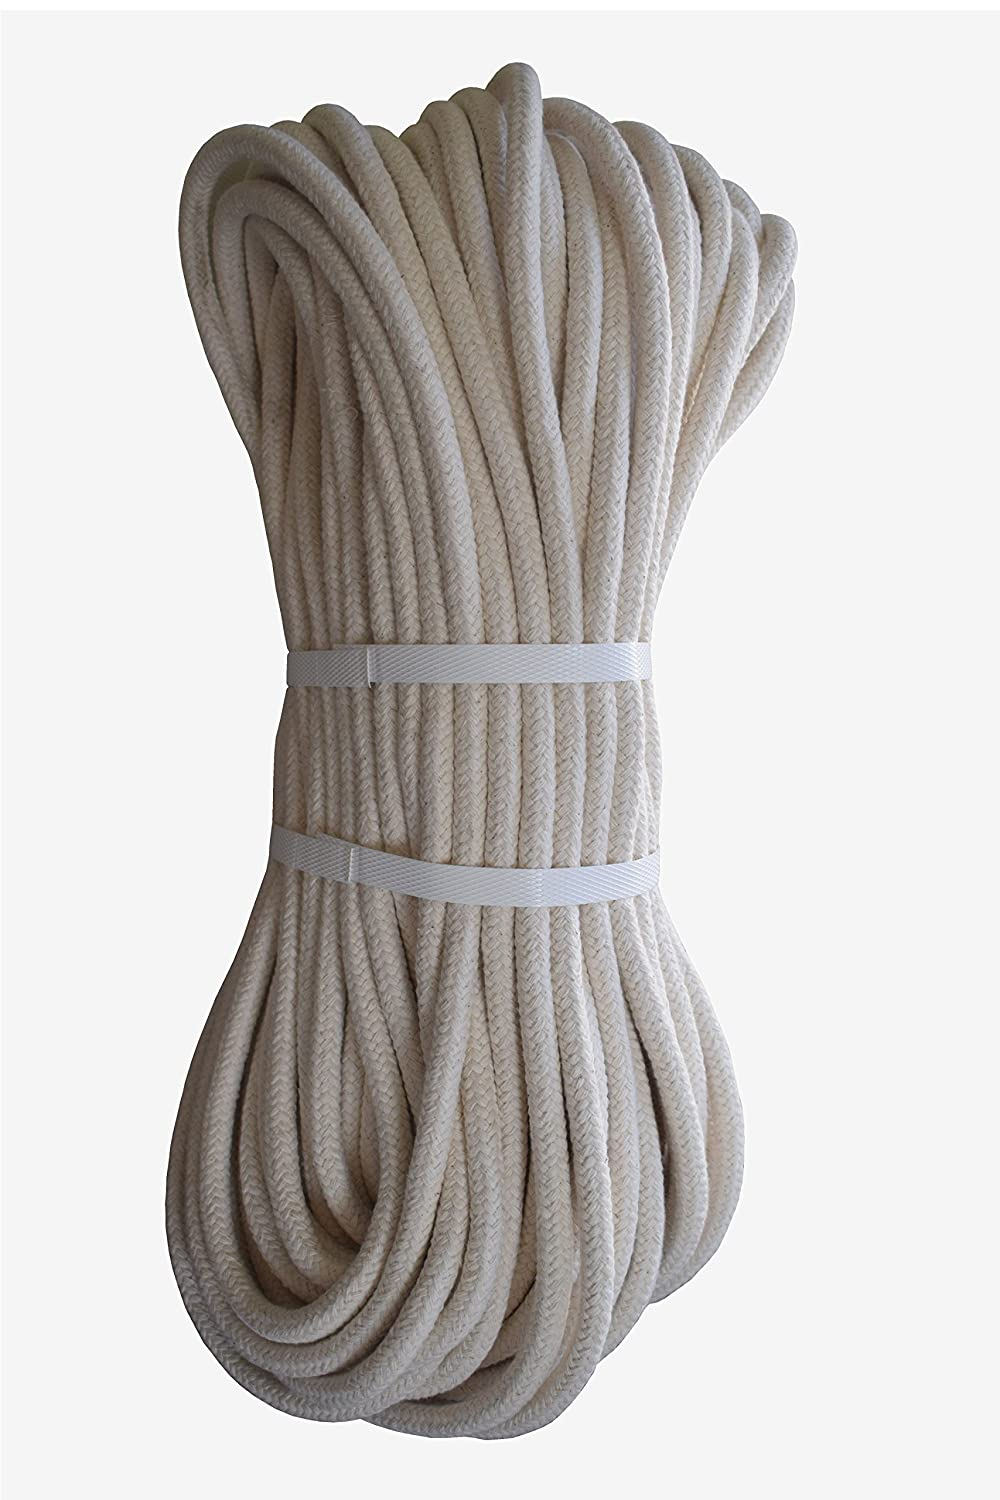 100% Natural 16 Strand Cotton Rope 8mm 50 Meters HOMEHOBBY